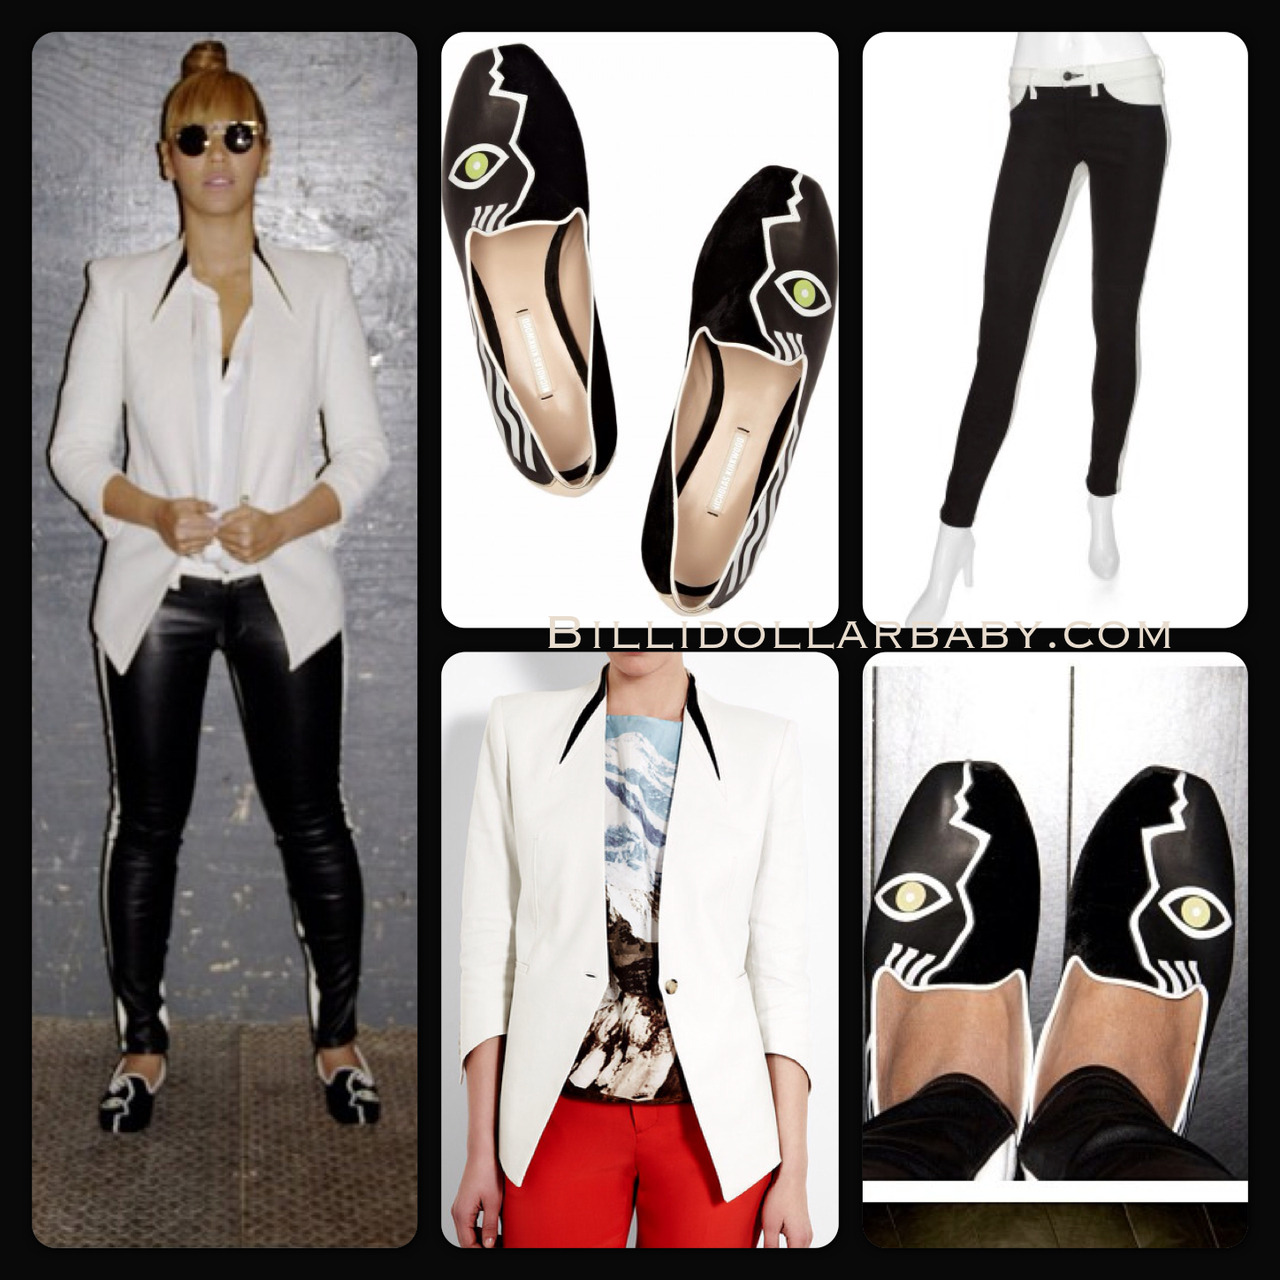 billidollarbaby:  GET THE LOOK: Beyonce has officially joined Instagram.  She posted a picture of her wearing: Nicholas Kirkwood Face-print leather and velvet loafers ($925) Helmut Lang Pointed Cuff Blazer ($645) Rag & Bone Black & White Leather Panel Skinny Jeans ($505)